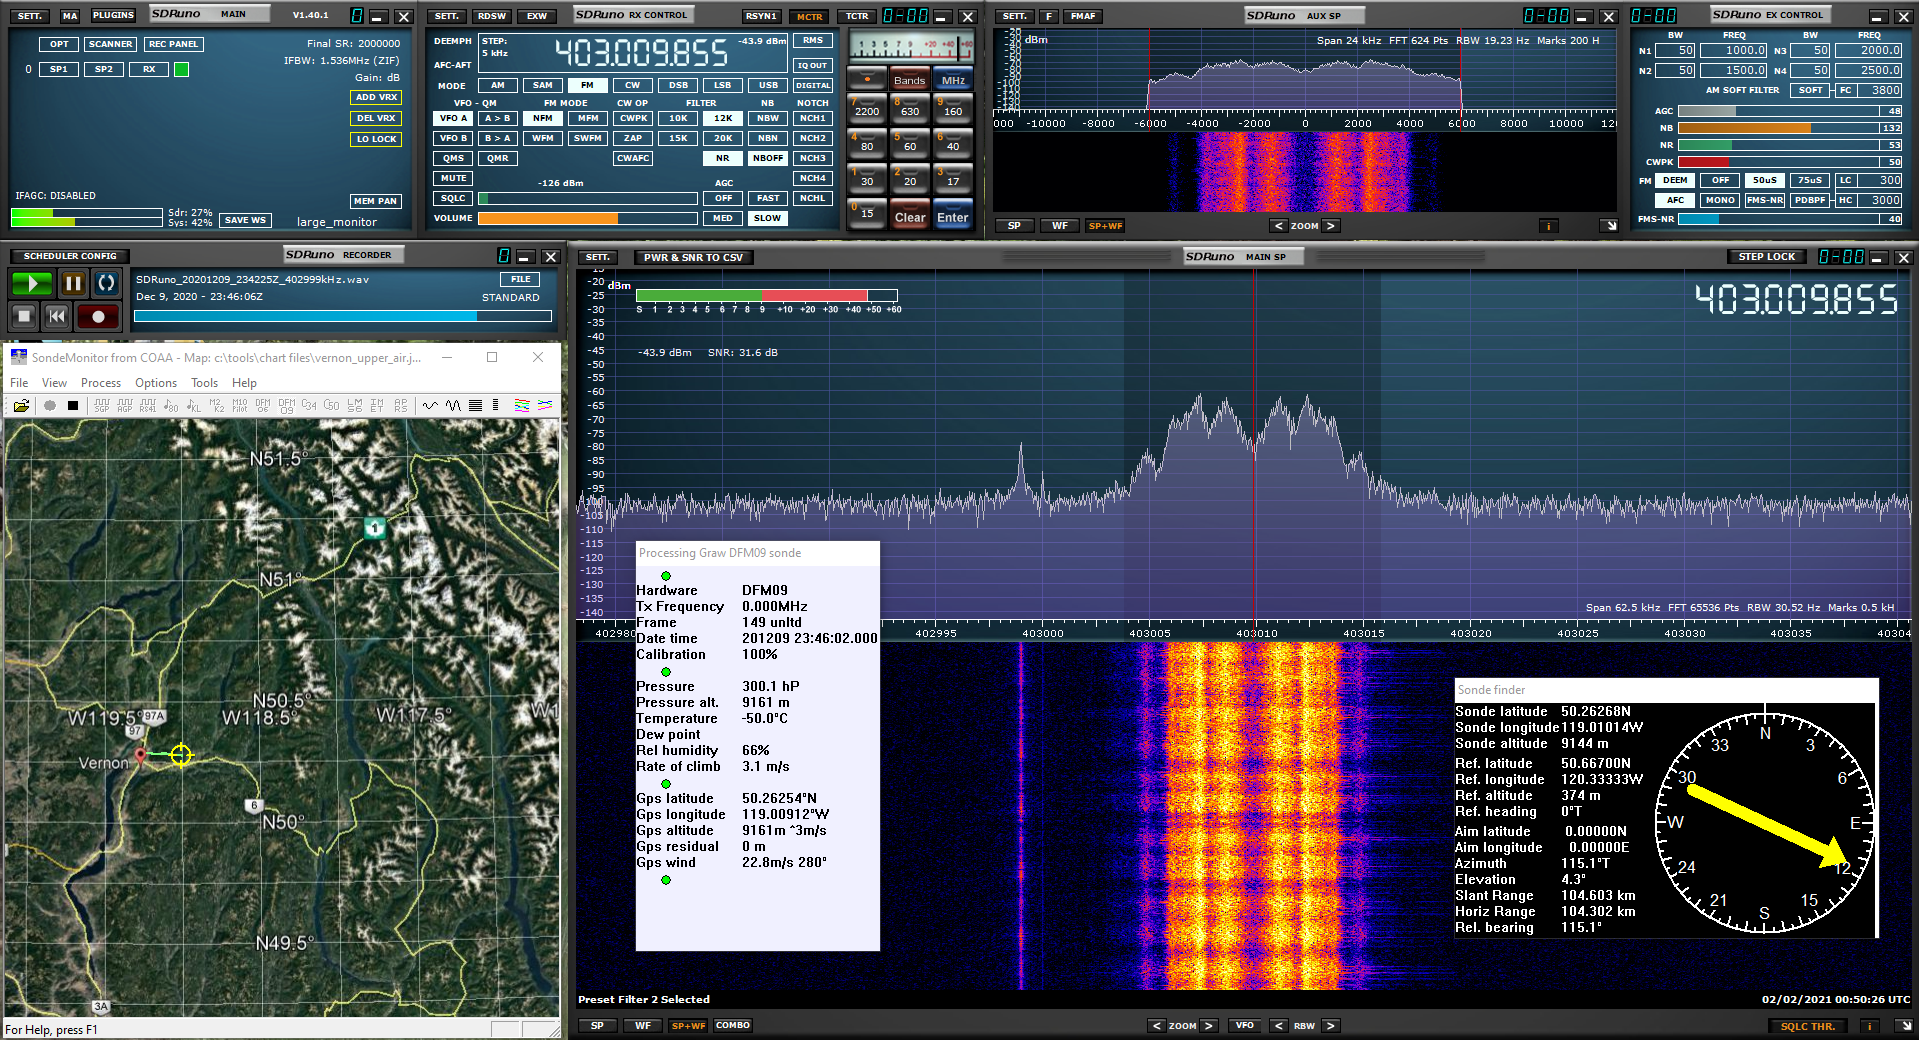 Screenshot of SDRUno and SondeMonitor receiving and decoding the signal from the radio-sonde.  The SondeMonitor software shows a map of the current location, the GPS coordinates, altitude and rise-rate.